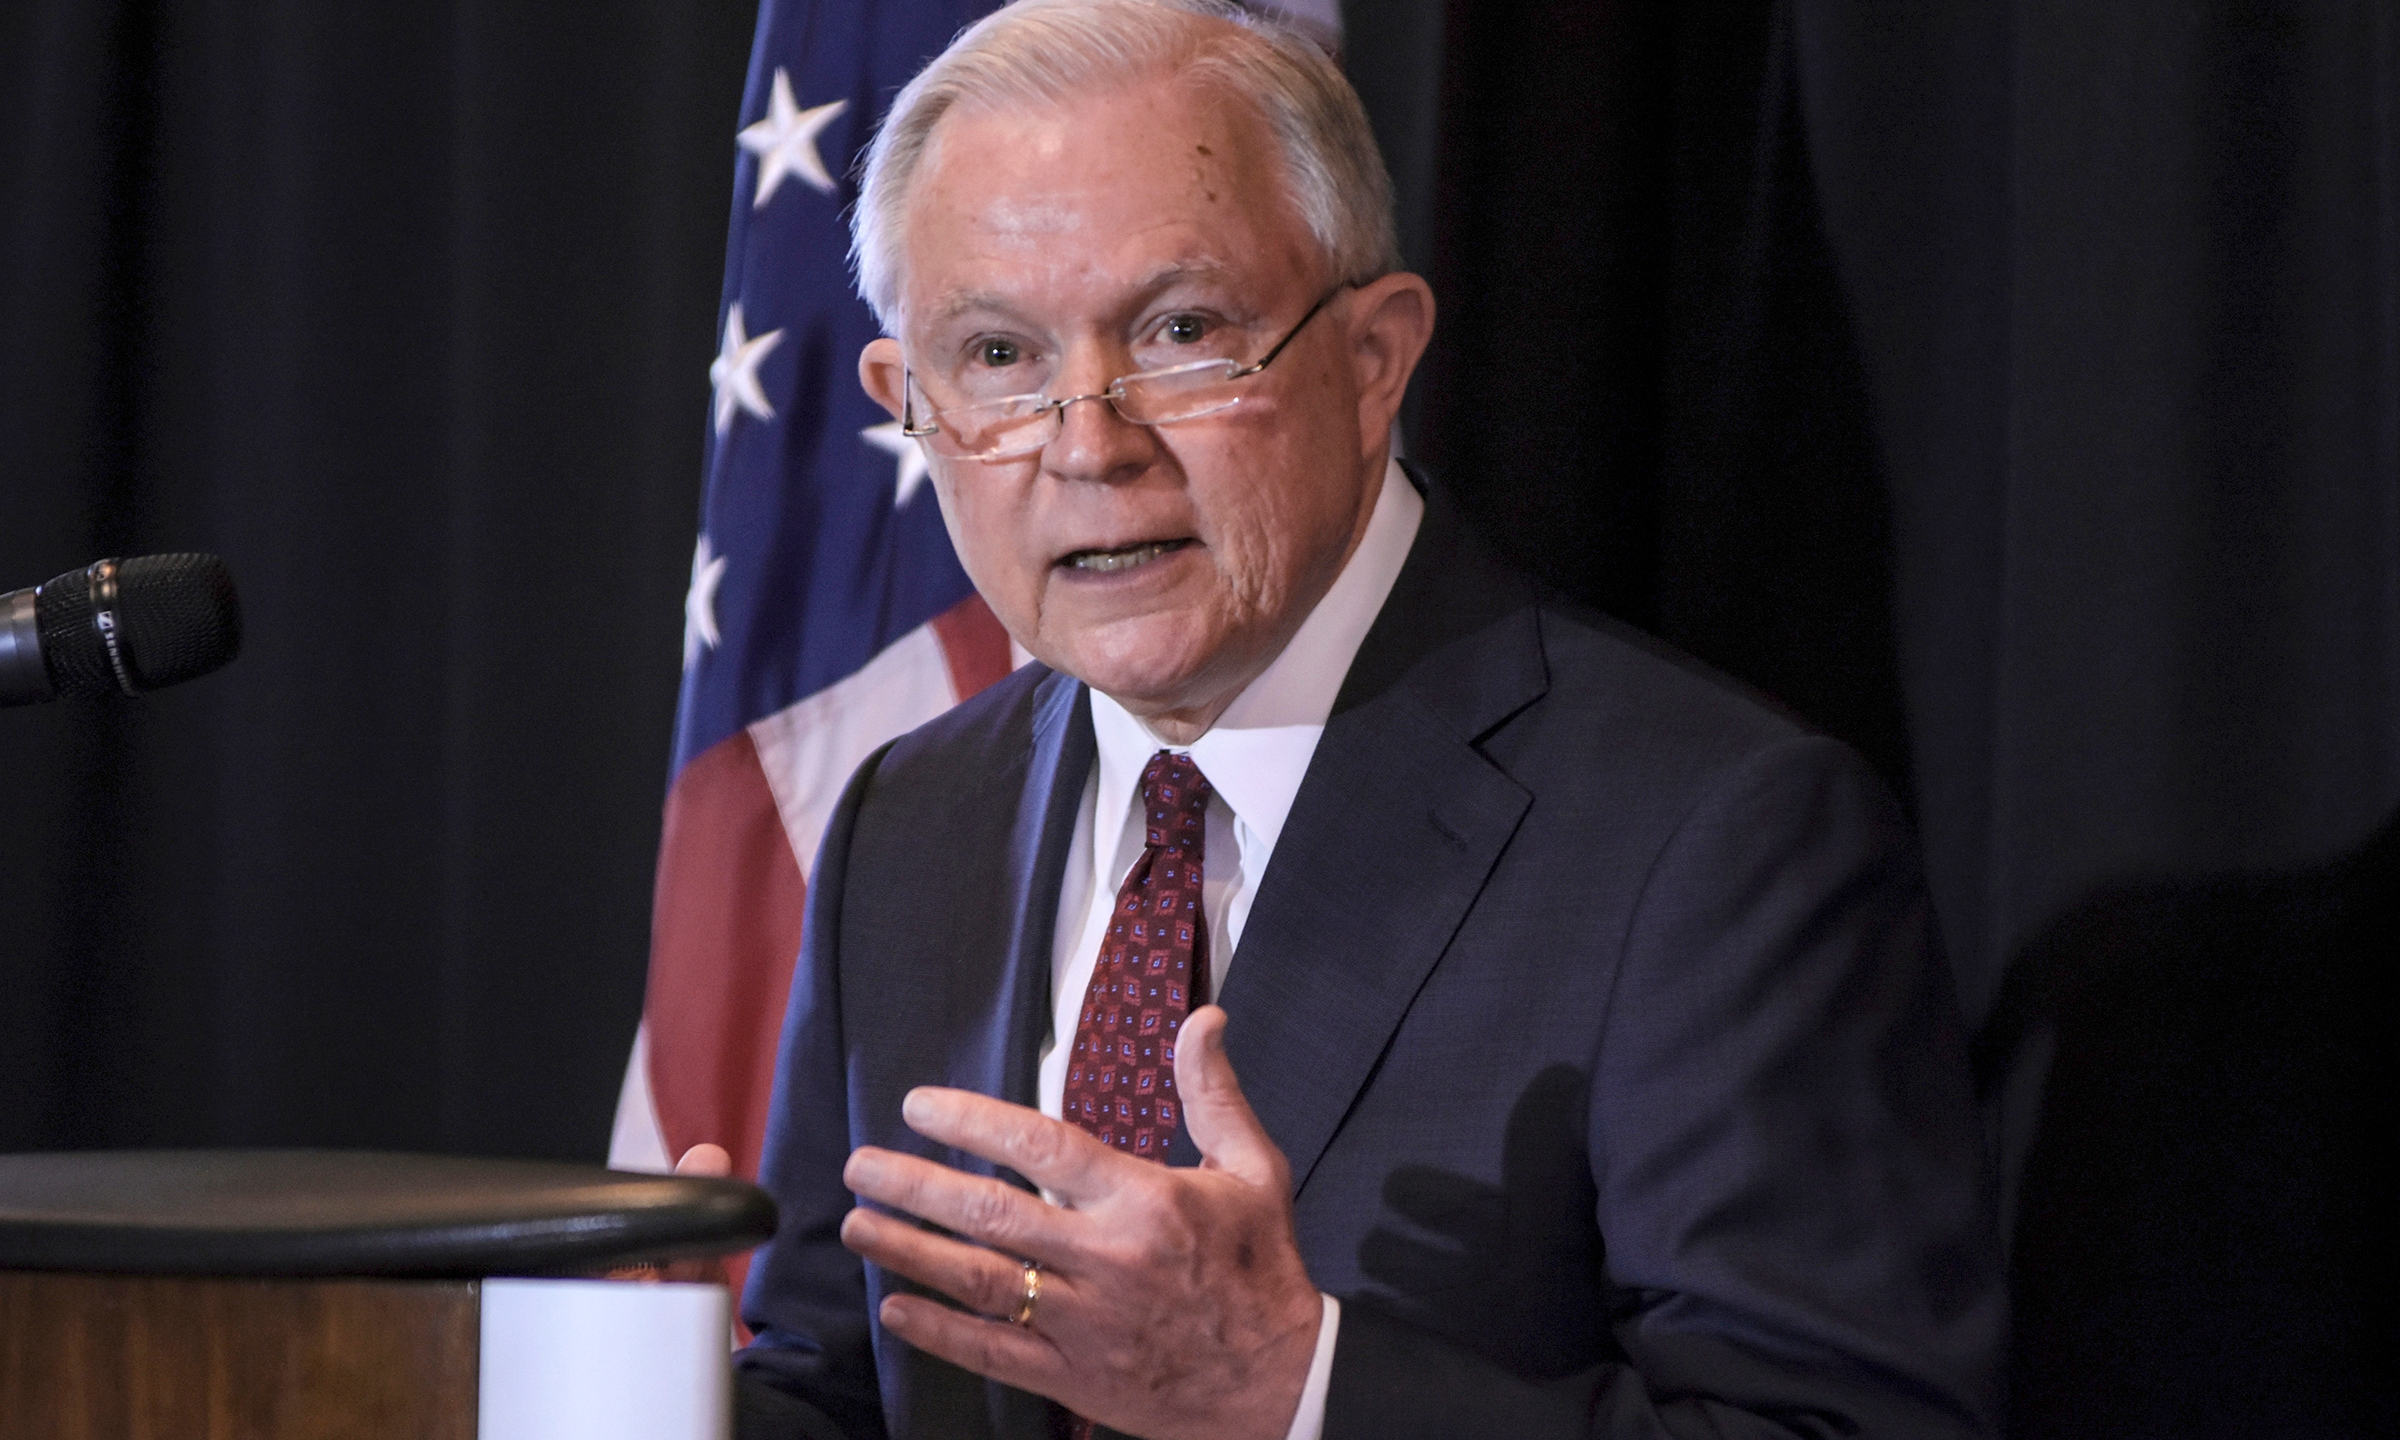 Sessions_Separating_Families_82150-159532.jpg32154270